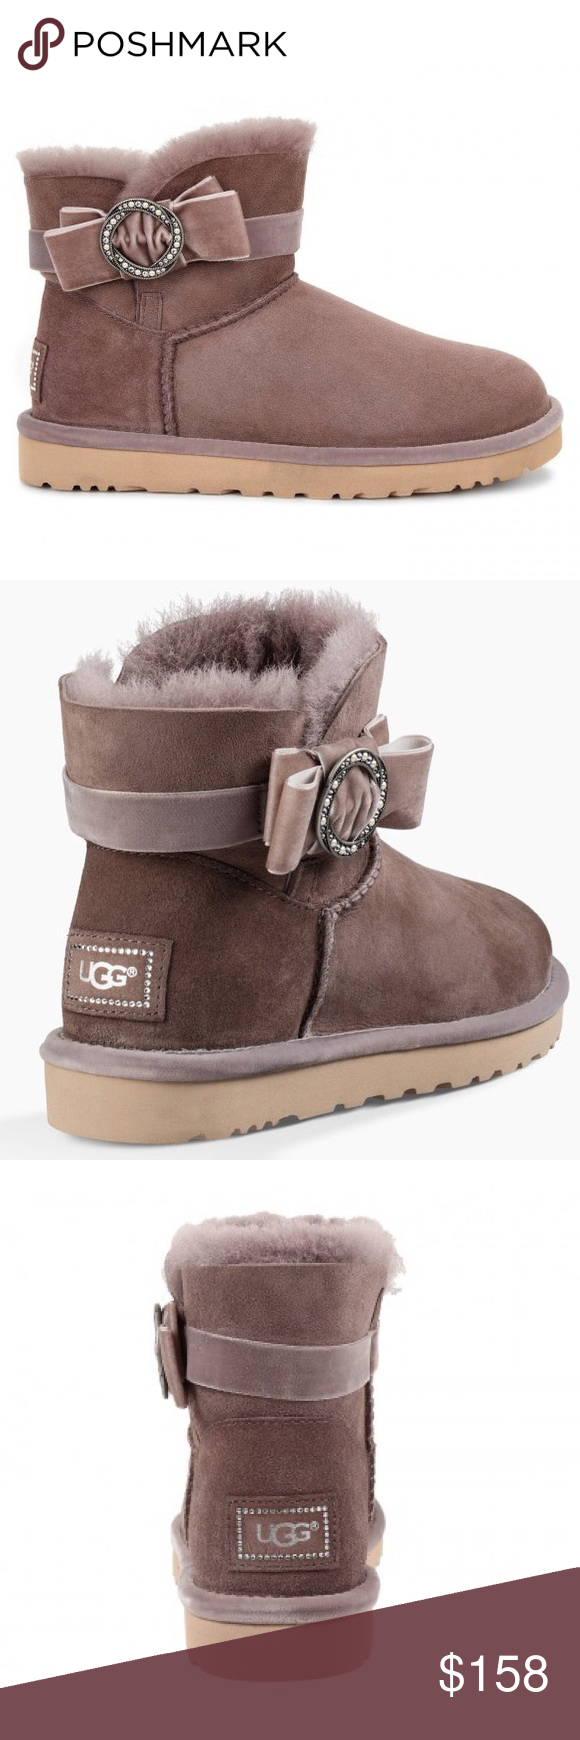 3eaabf07953 NWOB BOW UGG BOOTS Never worn, brand new Ugg boots in perfect ...